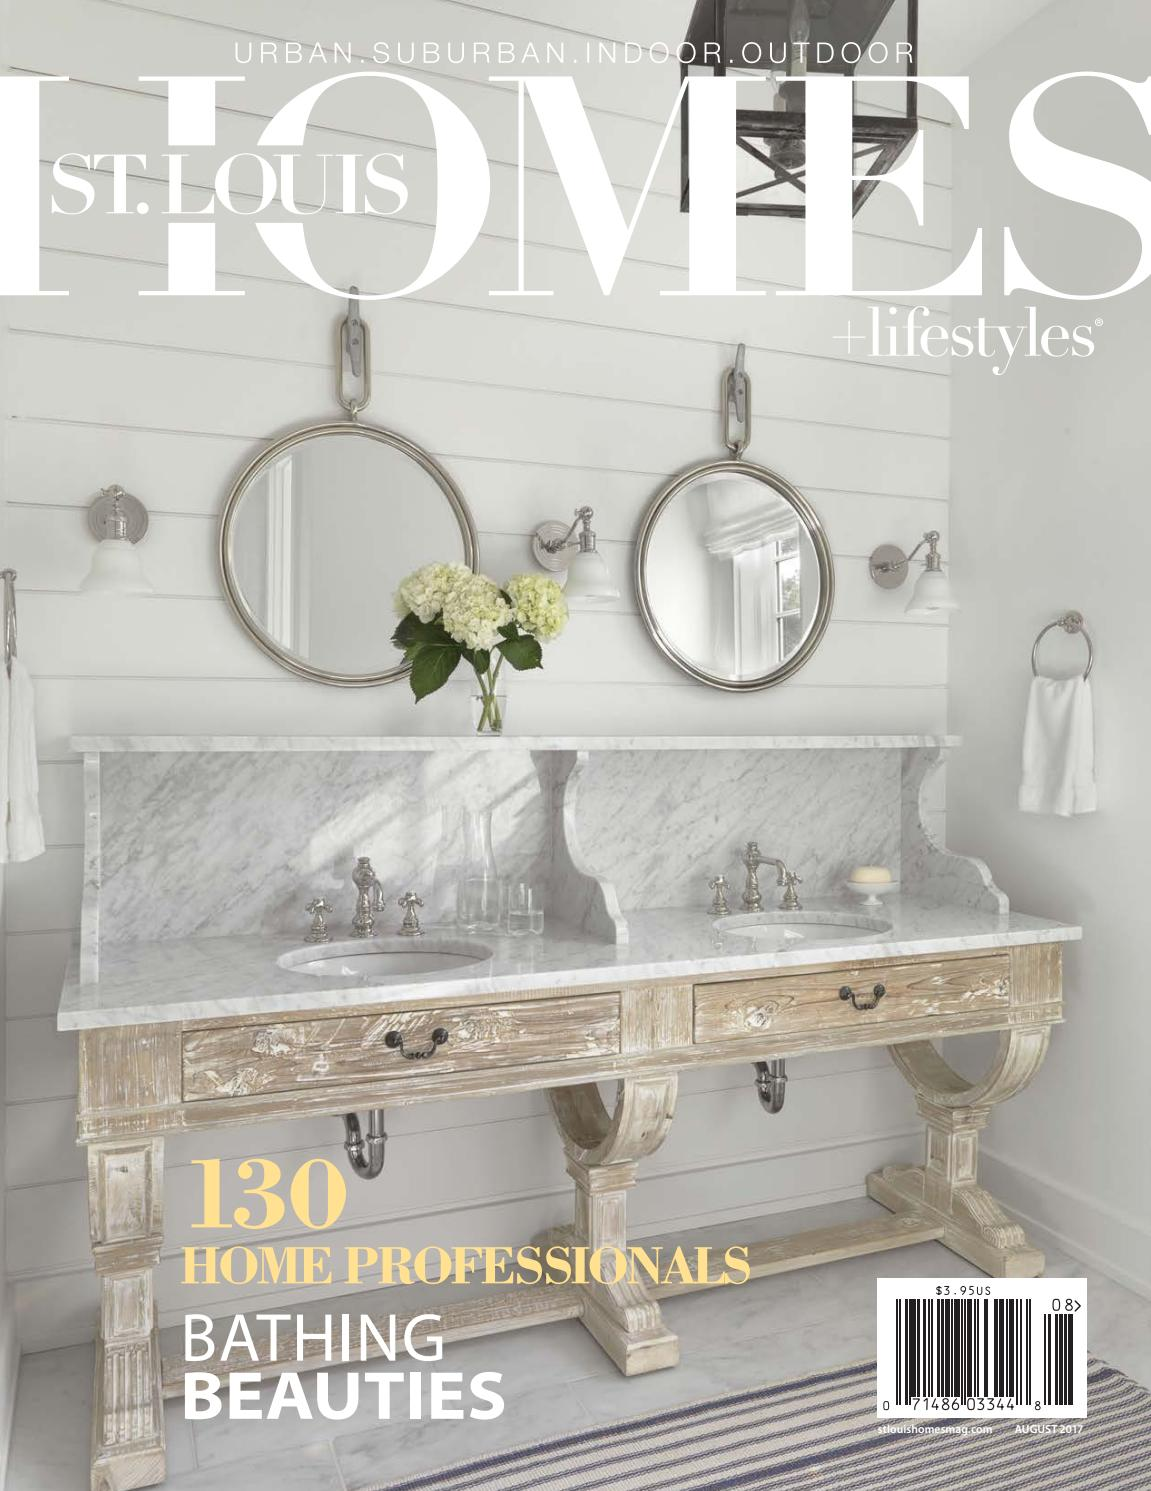 ferguson kitchen faucets august 2017 by st louis homes amp lifestyles issuu 11660